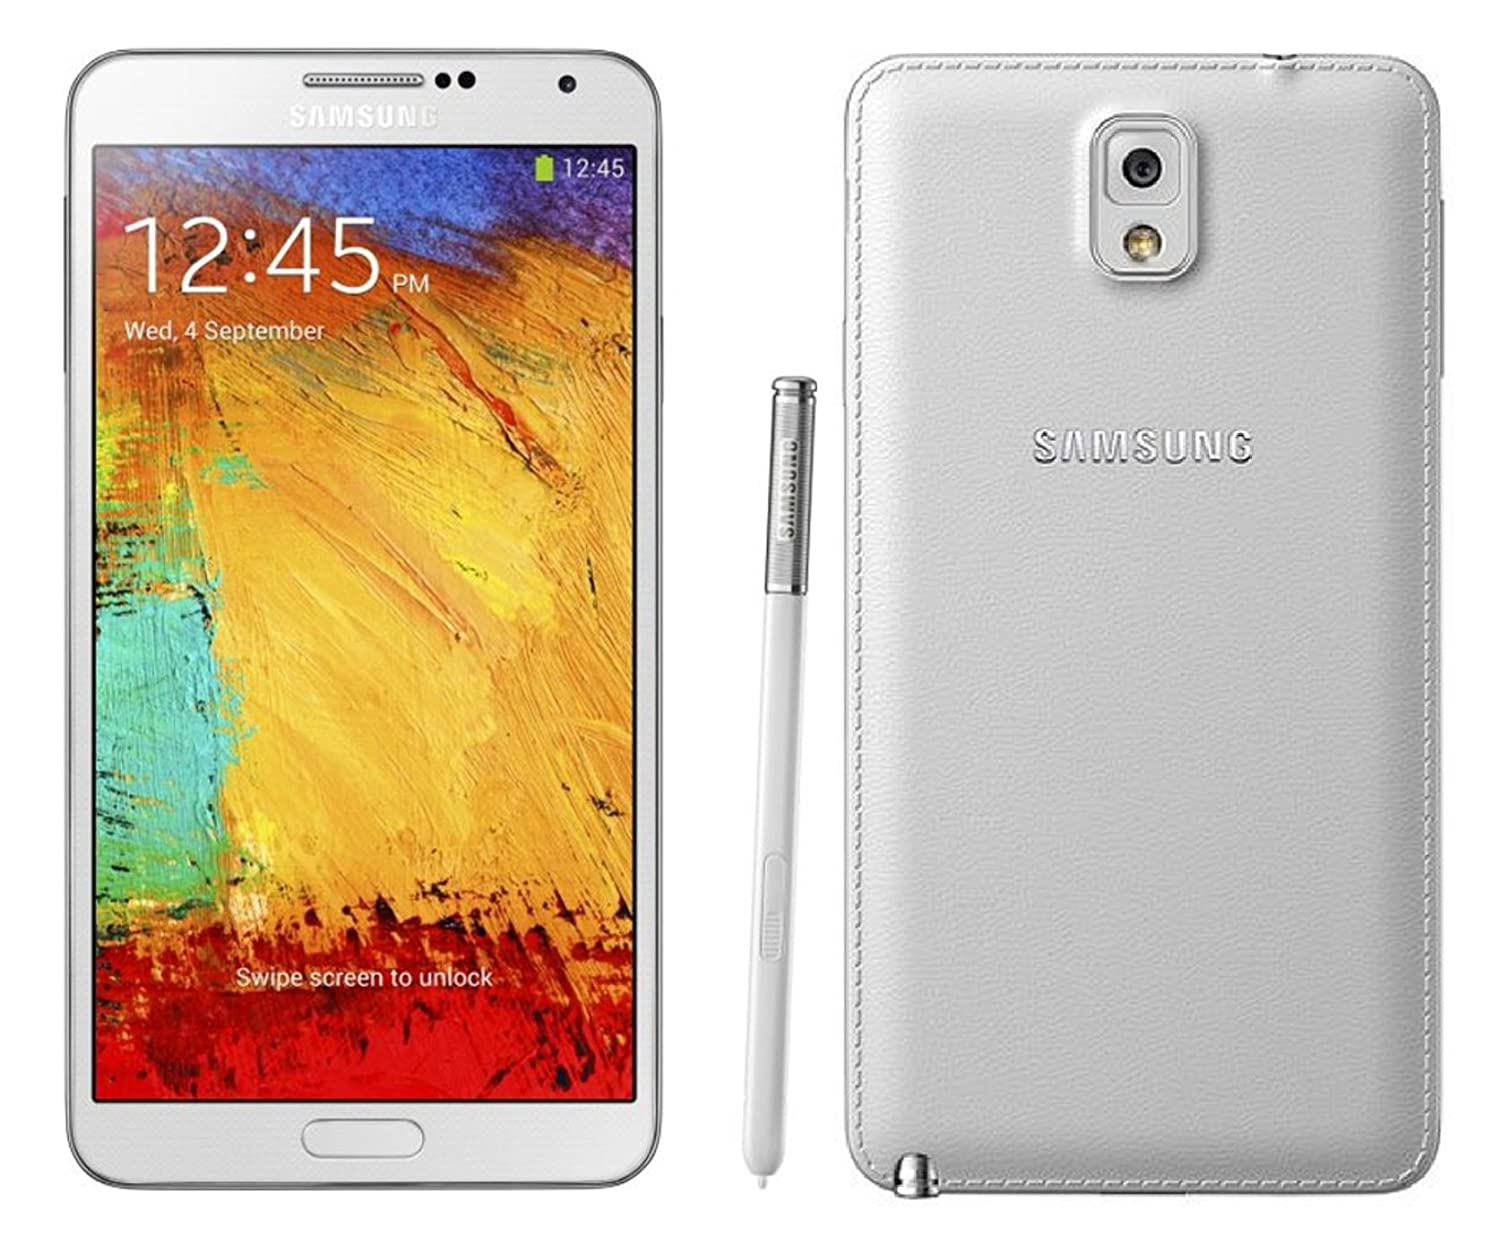 Samsung Galaxy Note 3 N9005 32GB 4G LTE WHITE Unlocked International Version